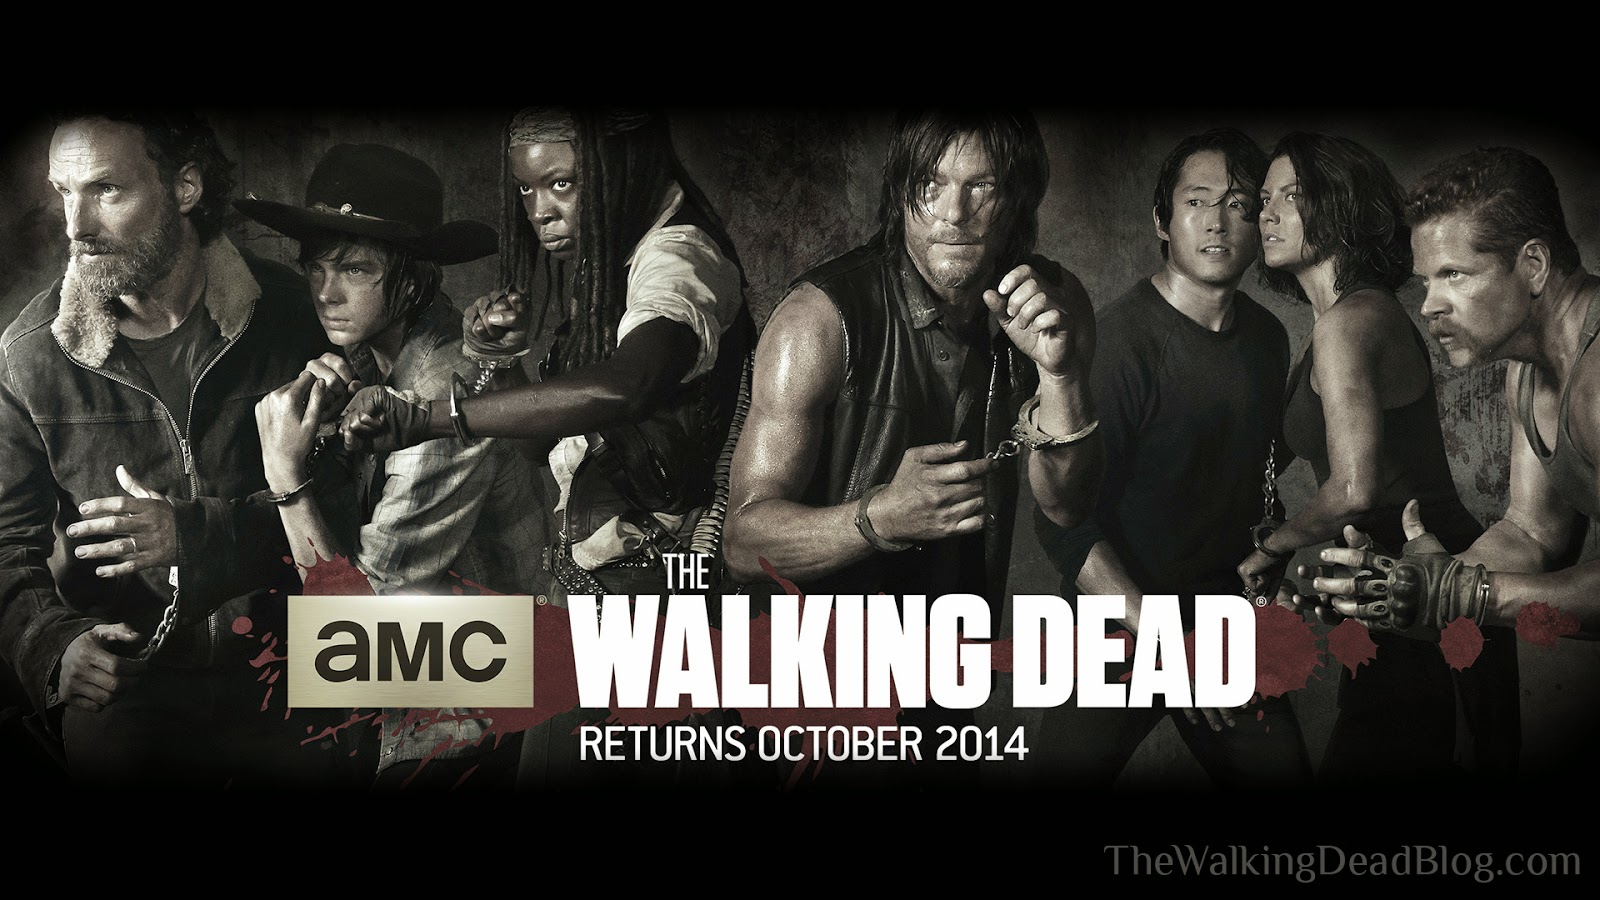 Walking Dead Season 5 Wallpaper